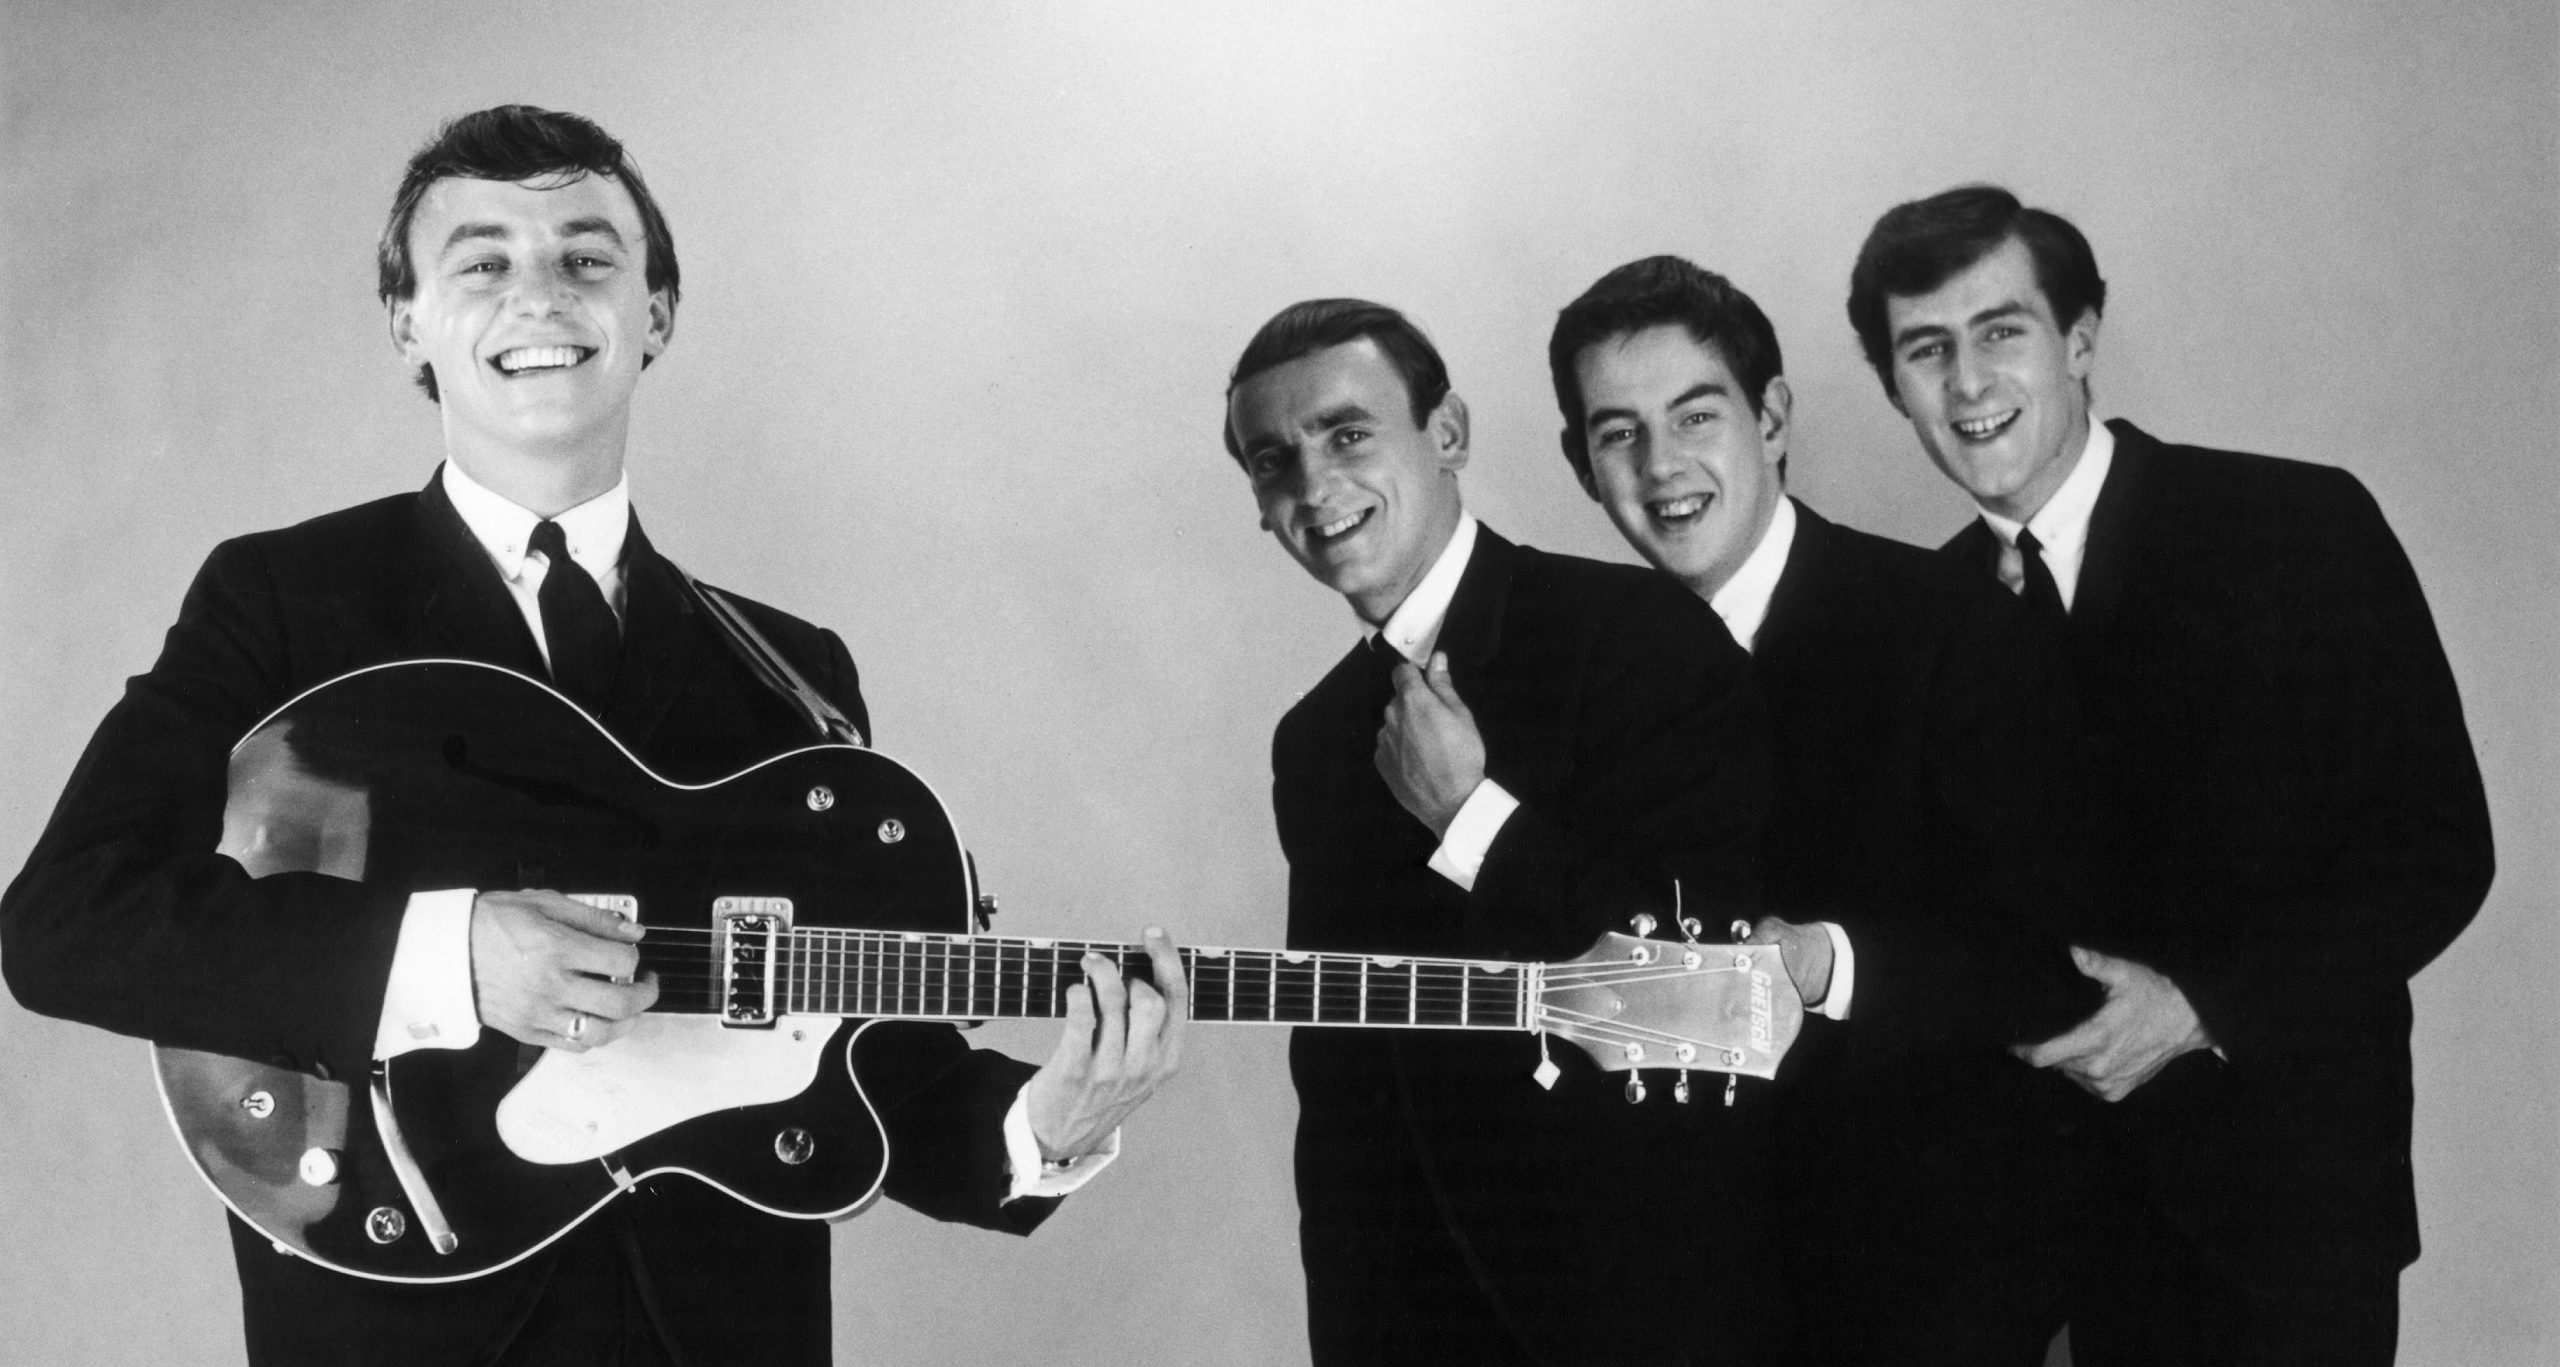 Gerry MARSDEN and THE PACEMAKERS (Photo by Gems/Redferns)